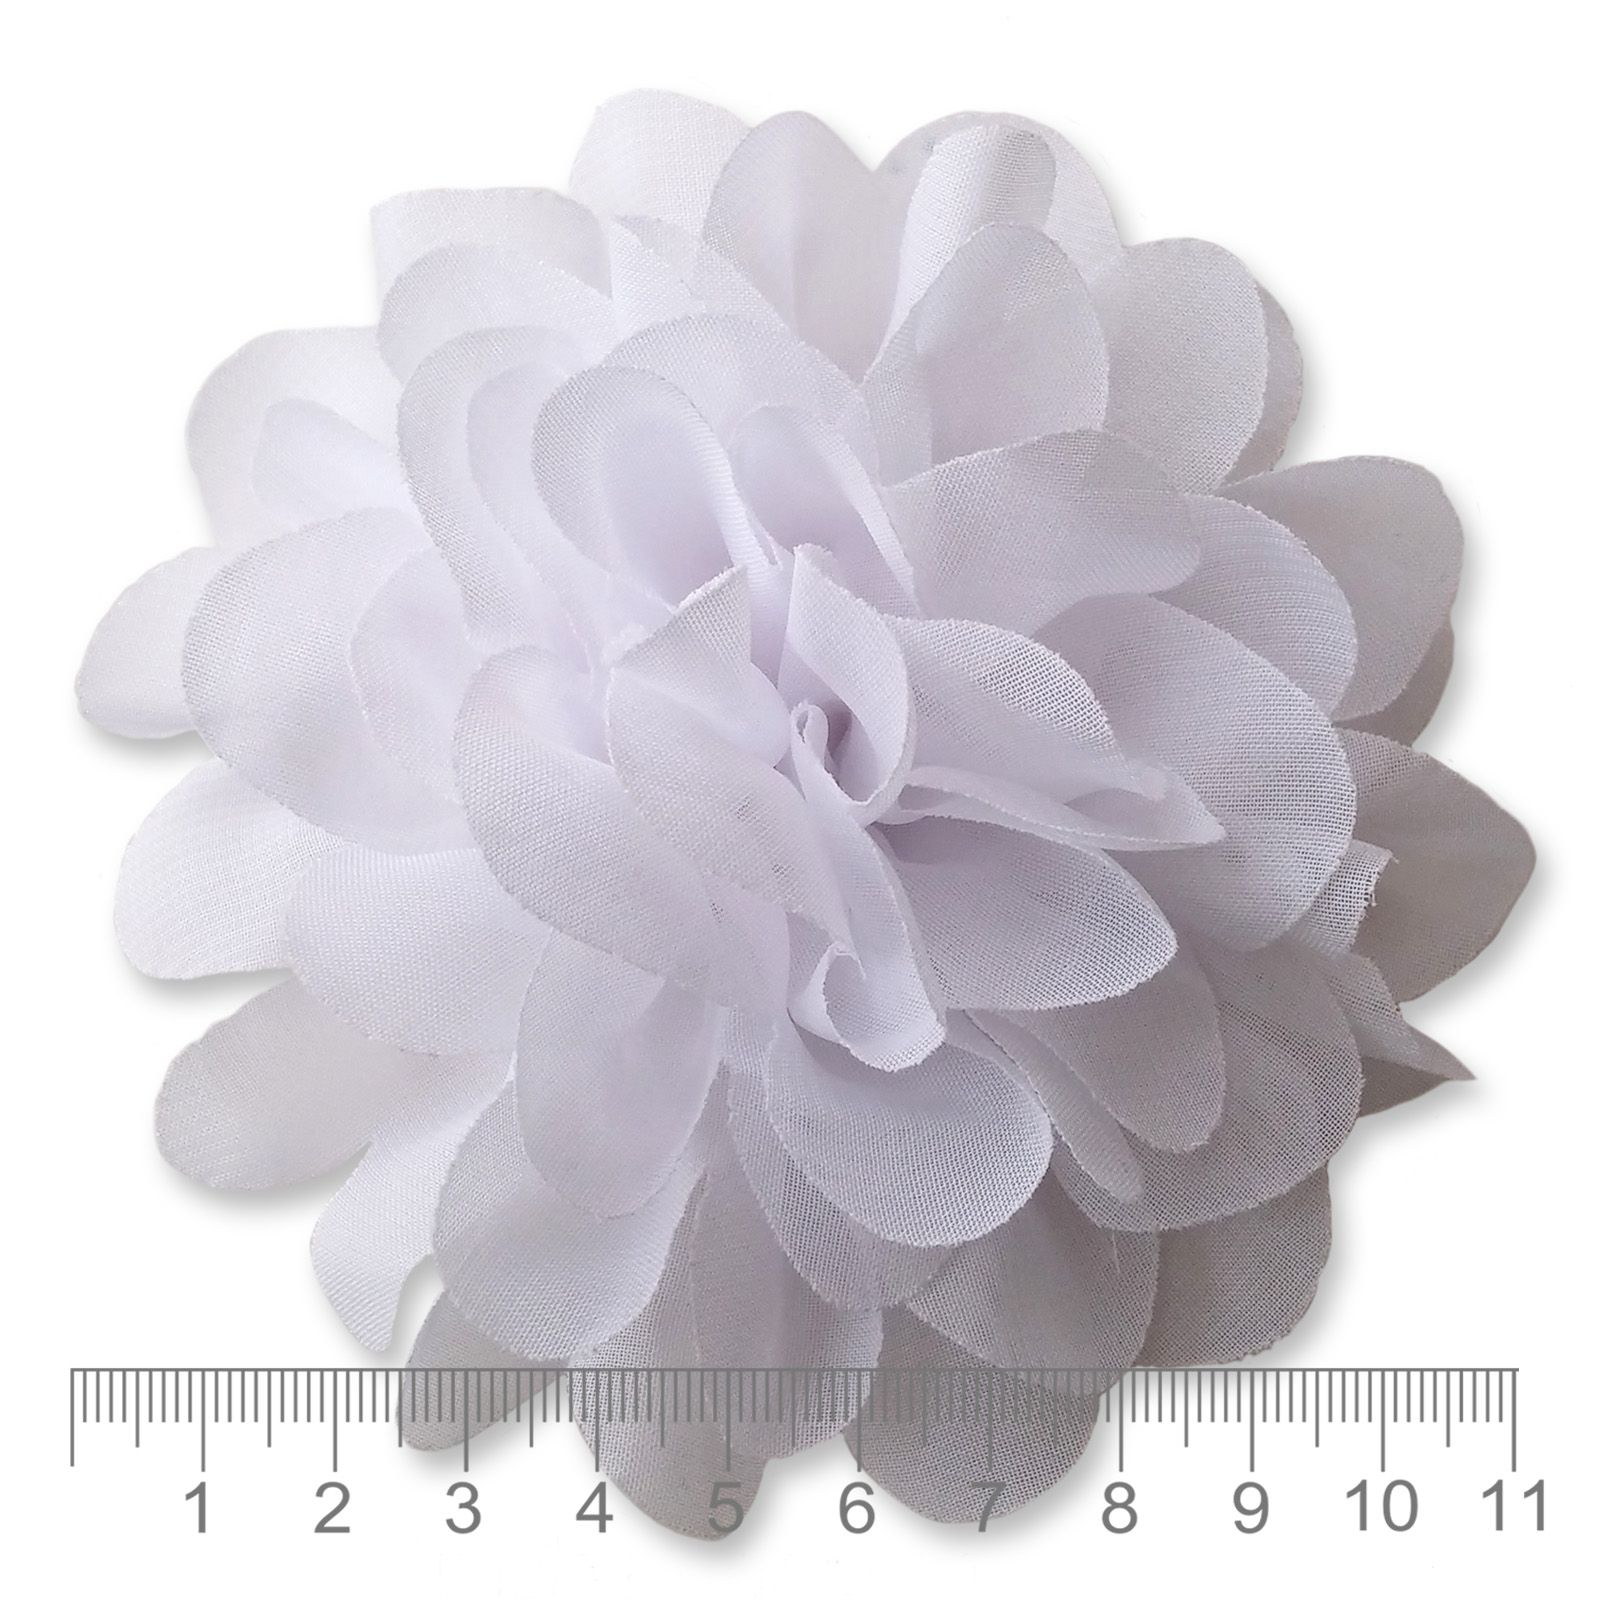 10cm Pompom Bloom White Fabric Flower Applique